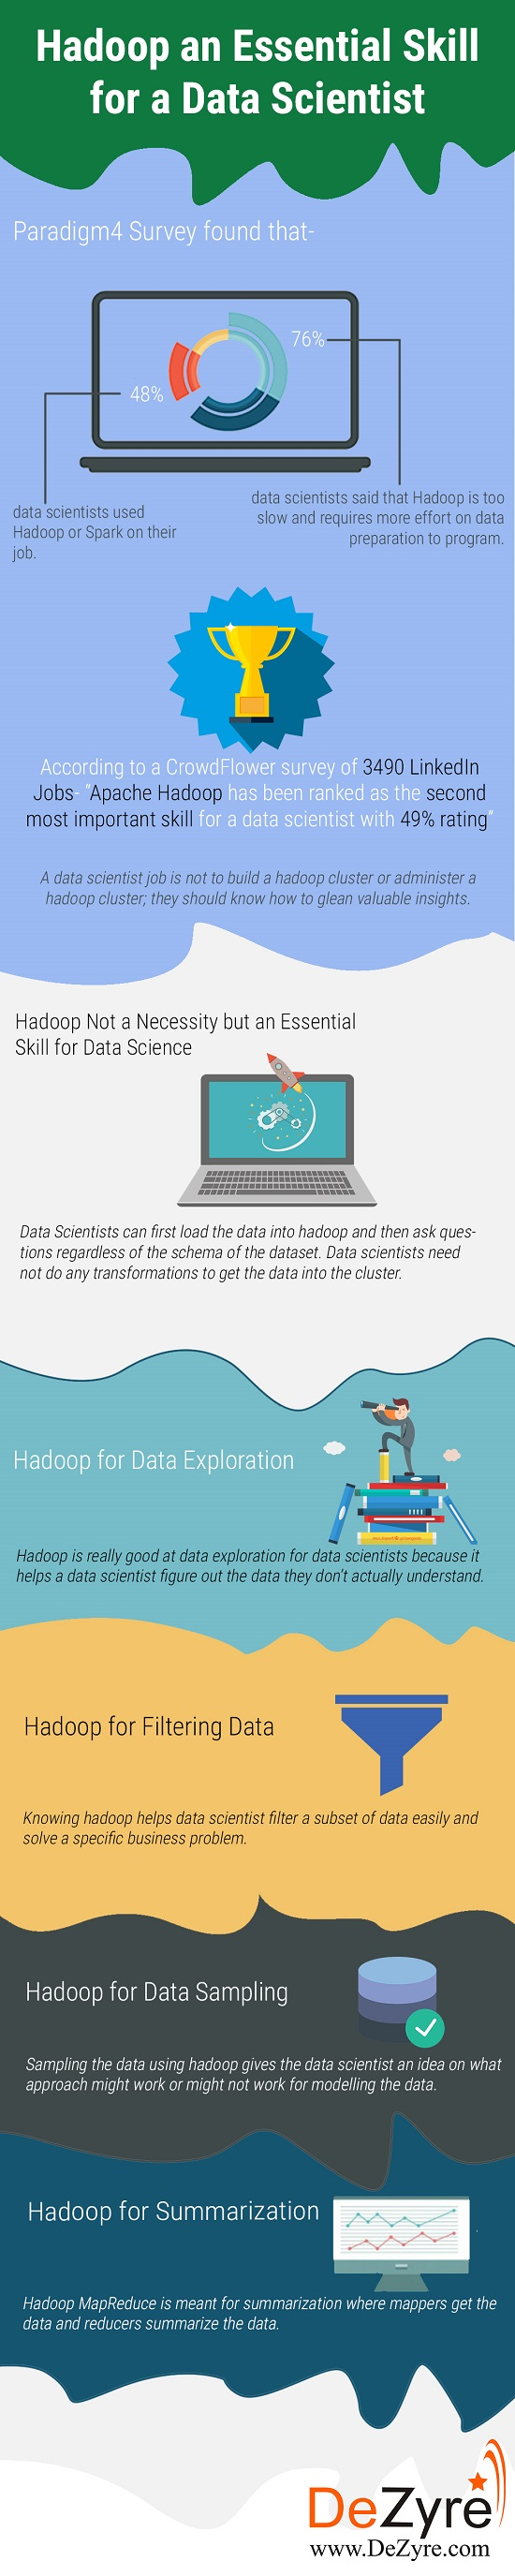 Is Hadoop a necessity for Data Scientists